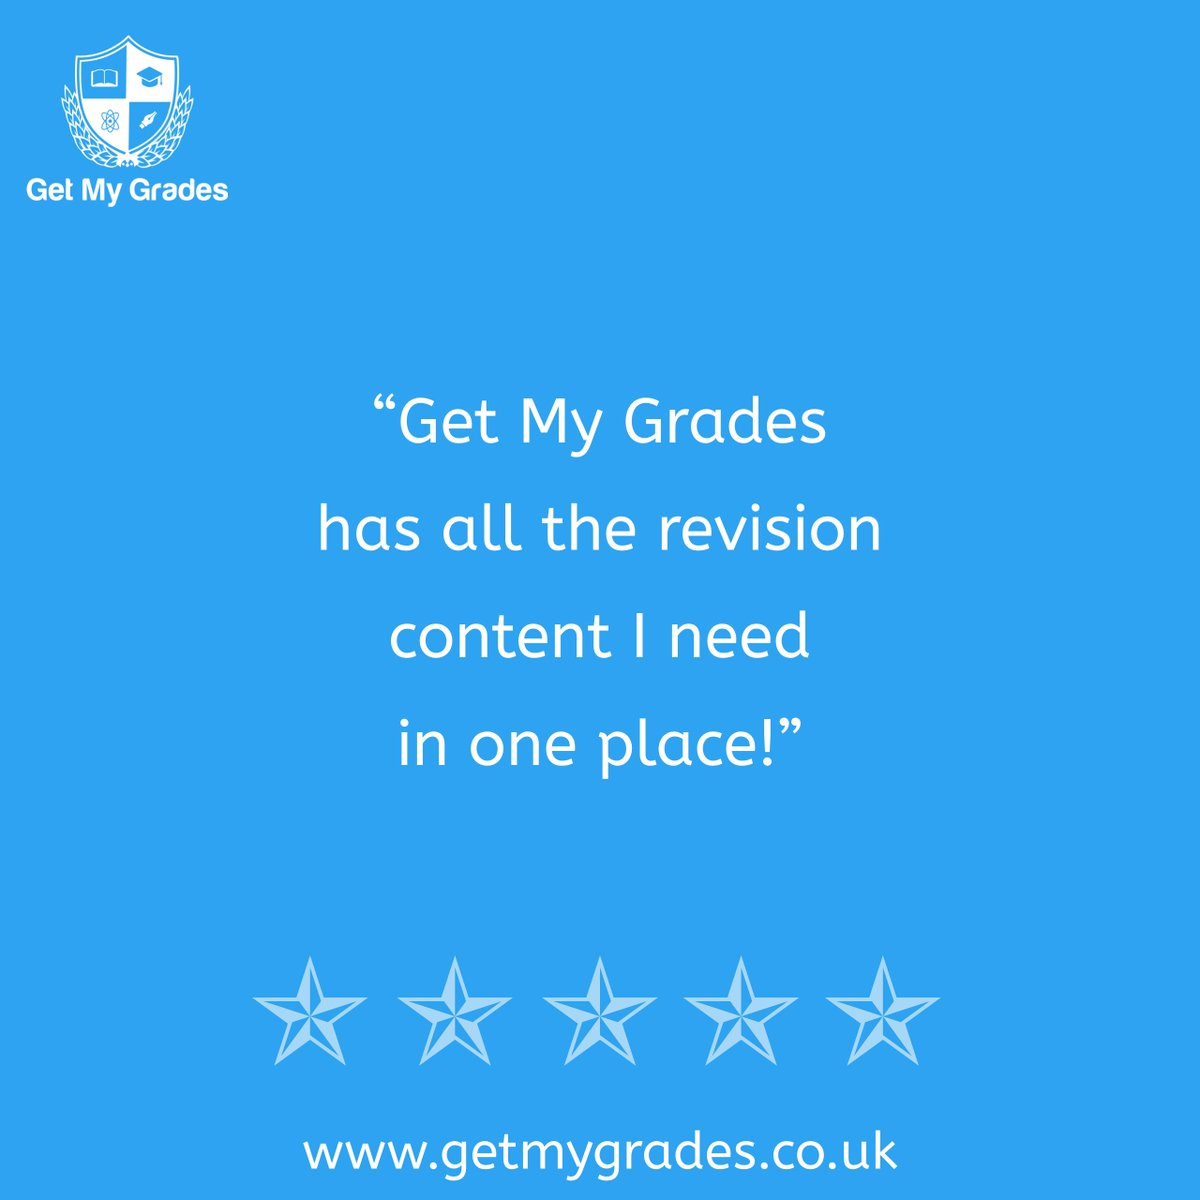 Want somewhere with revision content and questions for the core subjects all in one place?  >>> Find out what Get My Grades includes to help you succeed >>> https://t.co/tS9iIZiIdA  #edtech #ukedchat #edutwitter https://t.co/JGZnJyvRTu